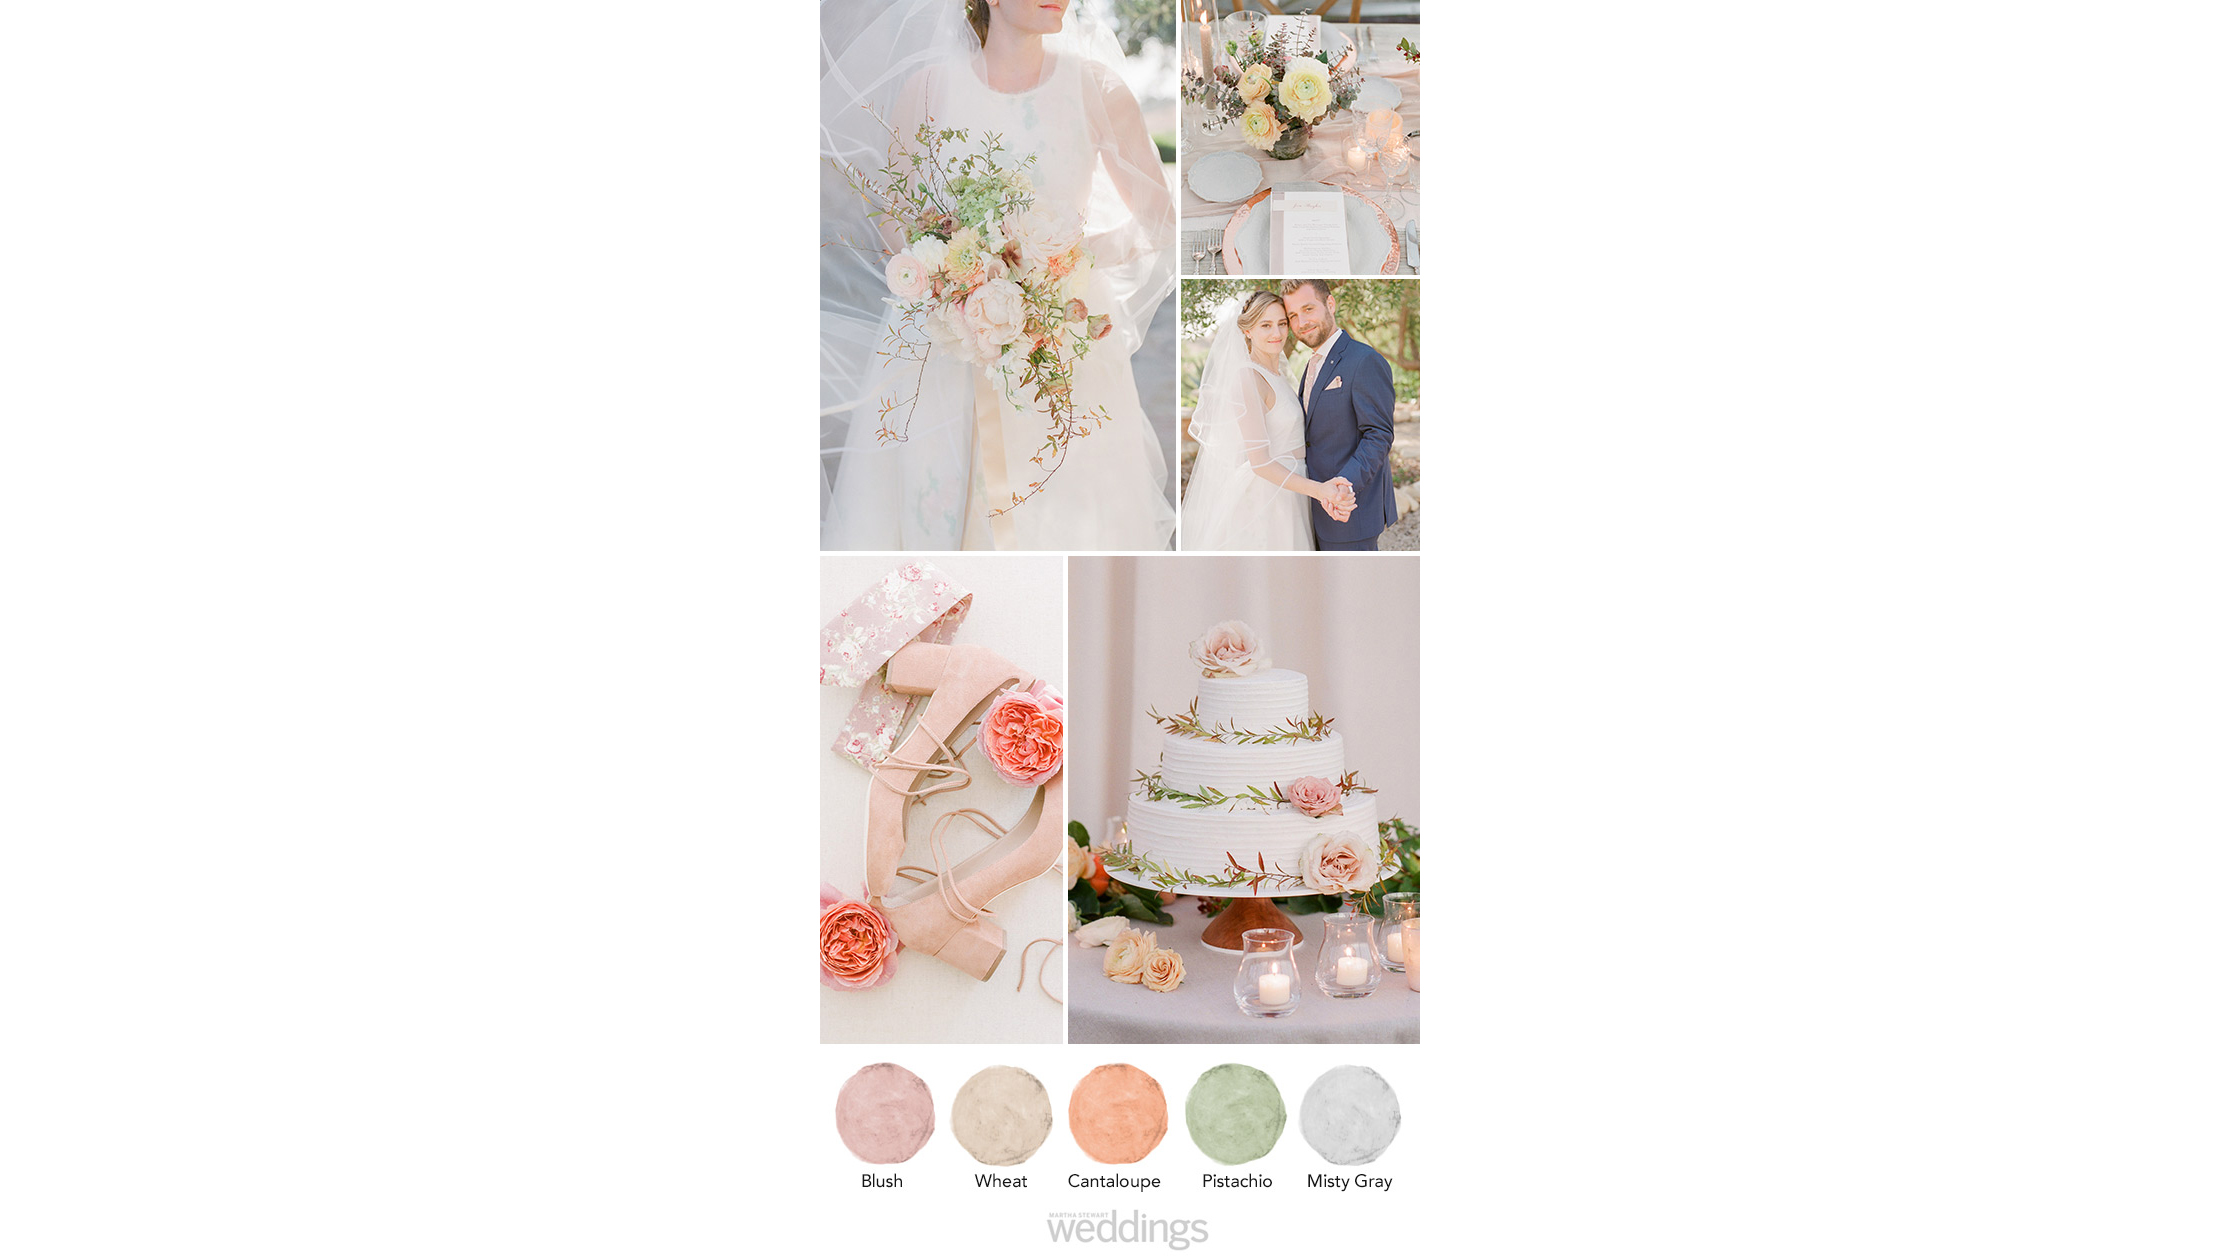 blush gray wheat wedding color palette ideas